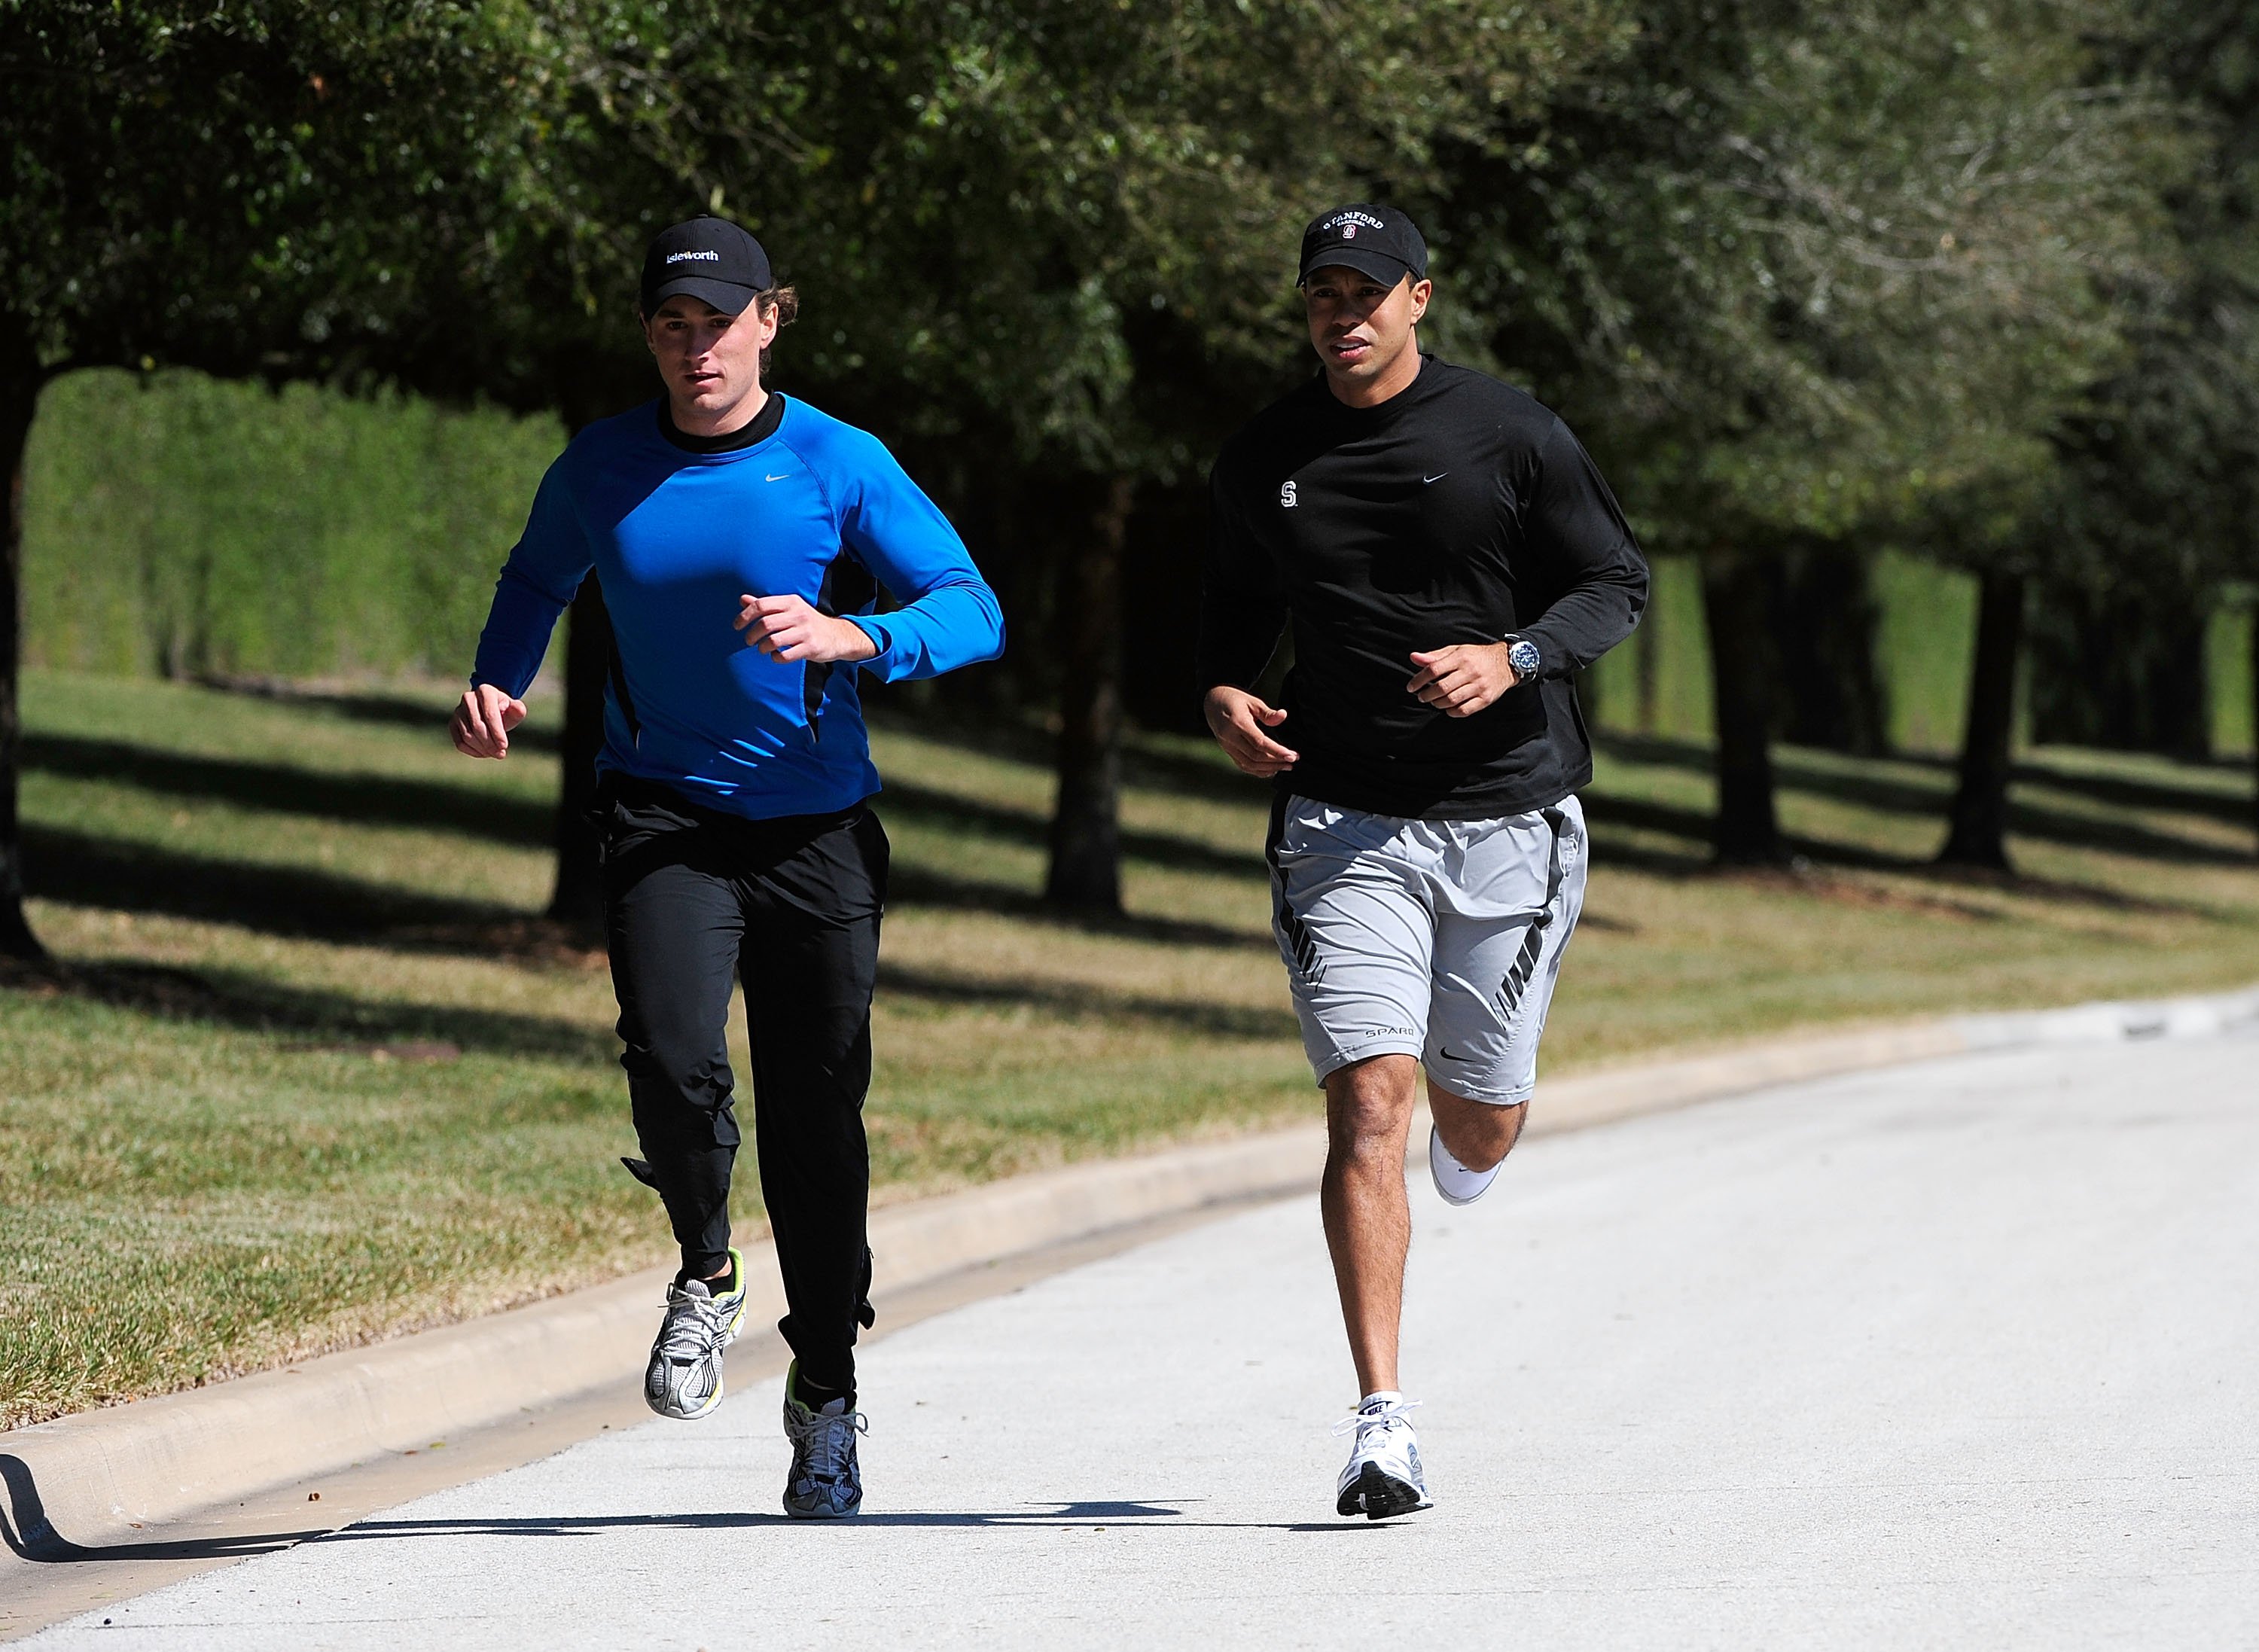 ORLANDO, FL - FEBRUARY 17:  Tiger Woods (R) jogs with an unidentified friend near his home on February 17, 2010 in Orlando, Florida. The PGA Tour has just announced that Tiger Woods will make a statement this Friday morning (February 19, 2010) at their he